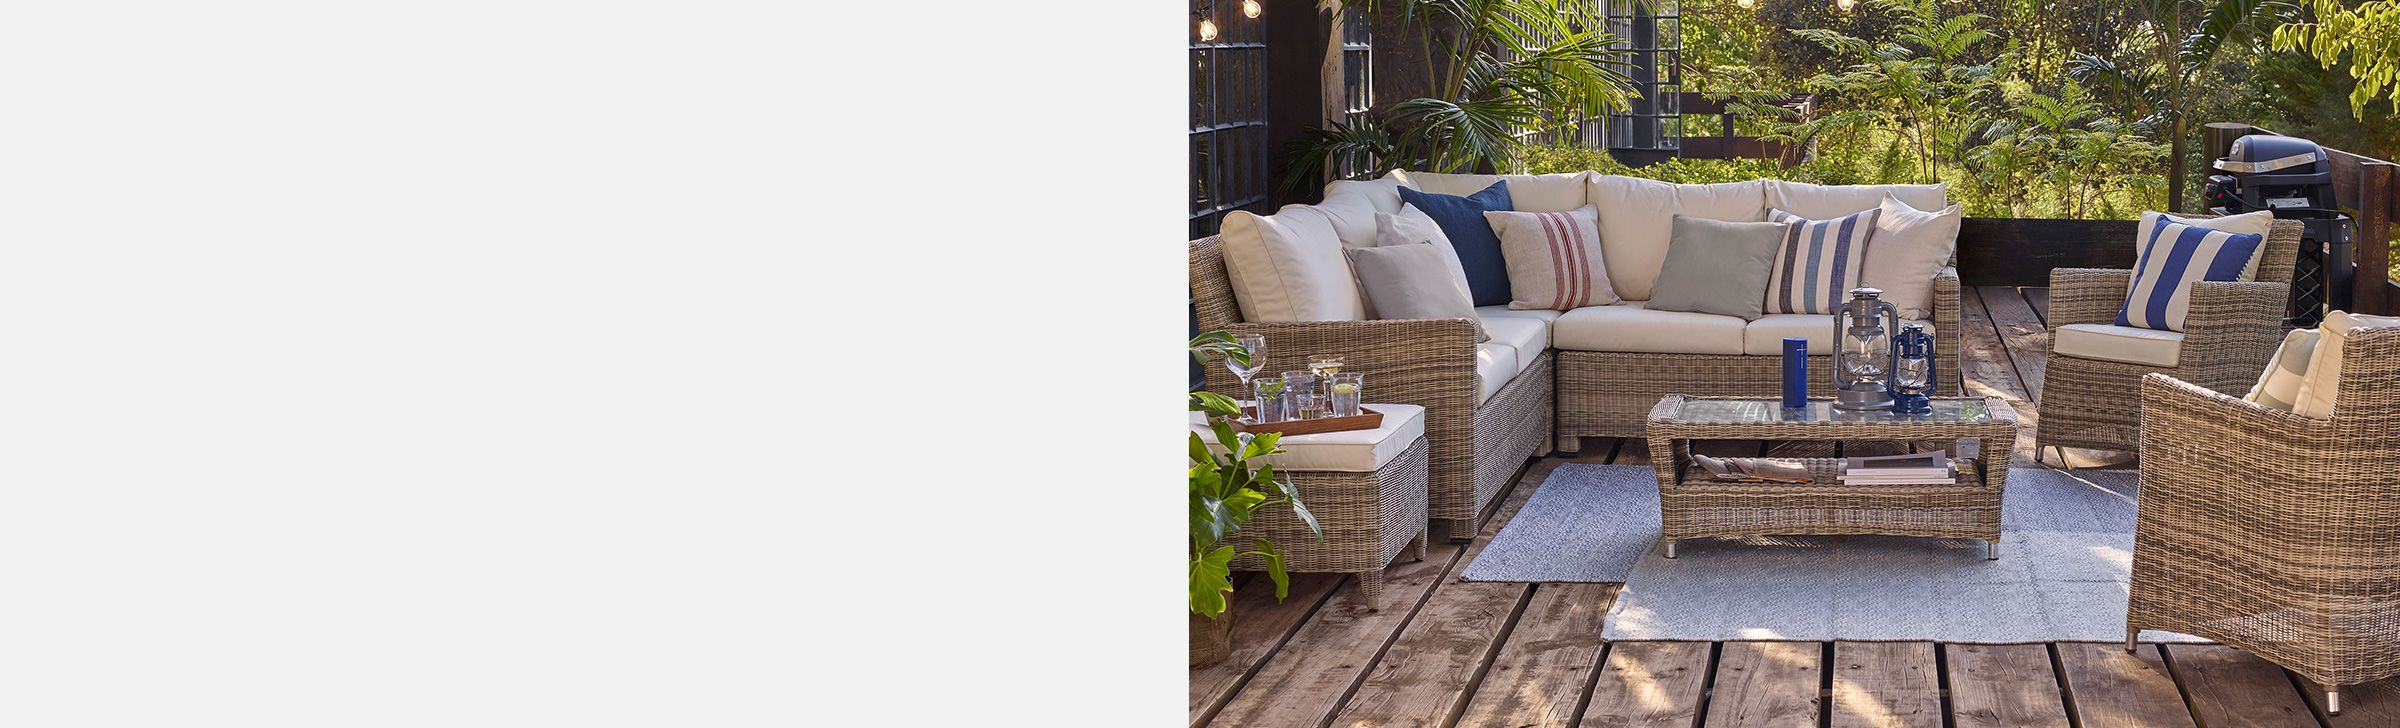 NEW GARDEN FURNITURE SETS